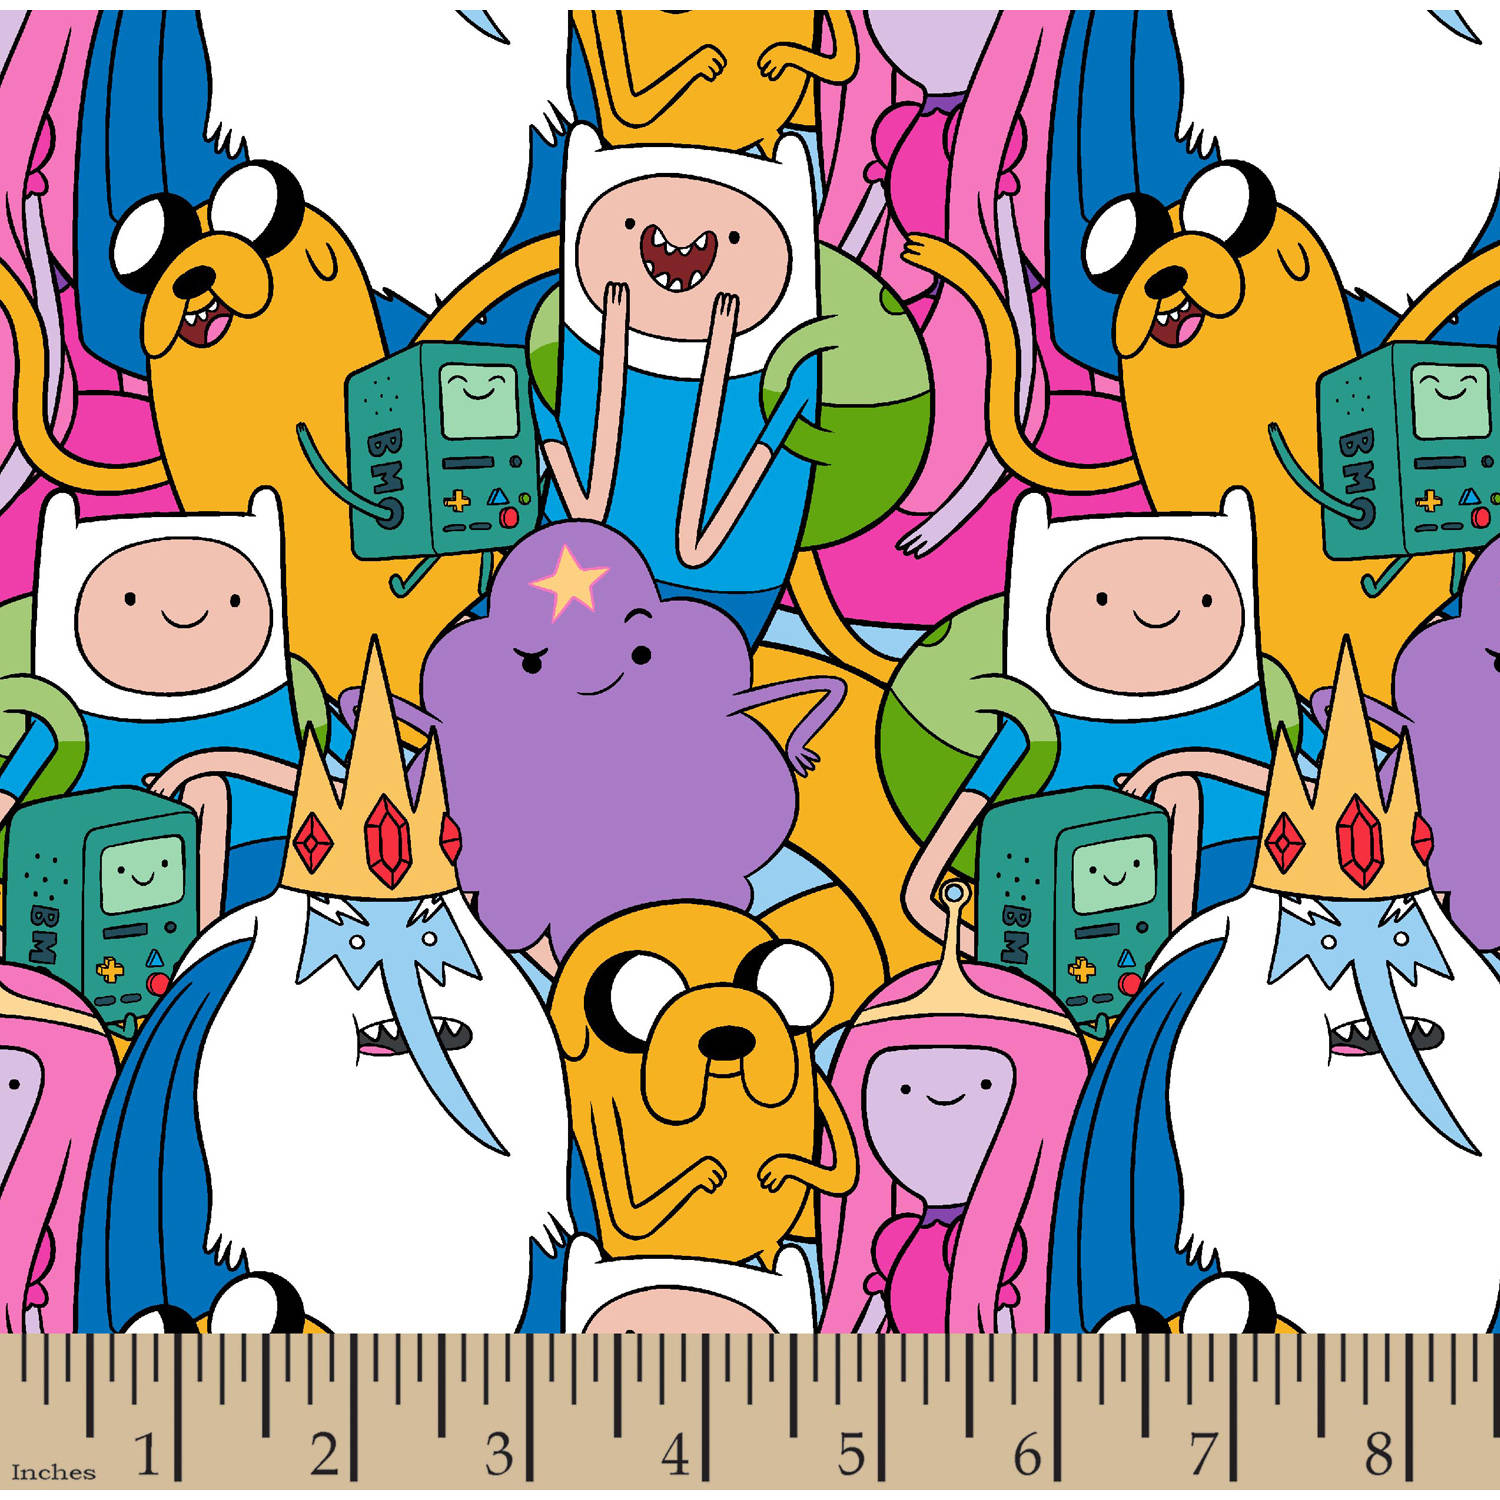 "Cartoon Network Adventure Time Packed Character Cotton, Multi-Colored, 43/44"" Width, Fabric by the Yard"